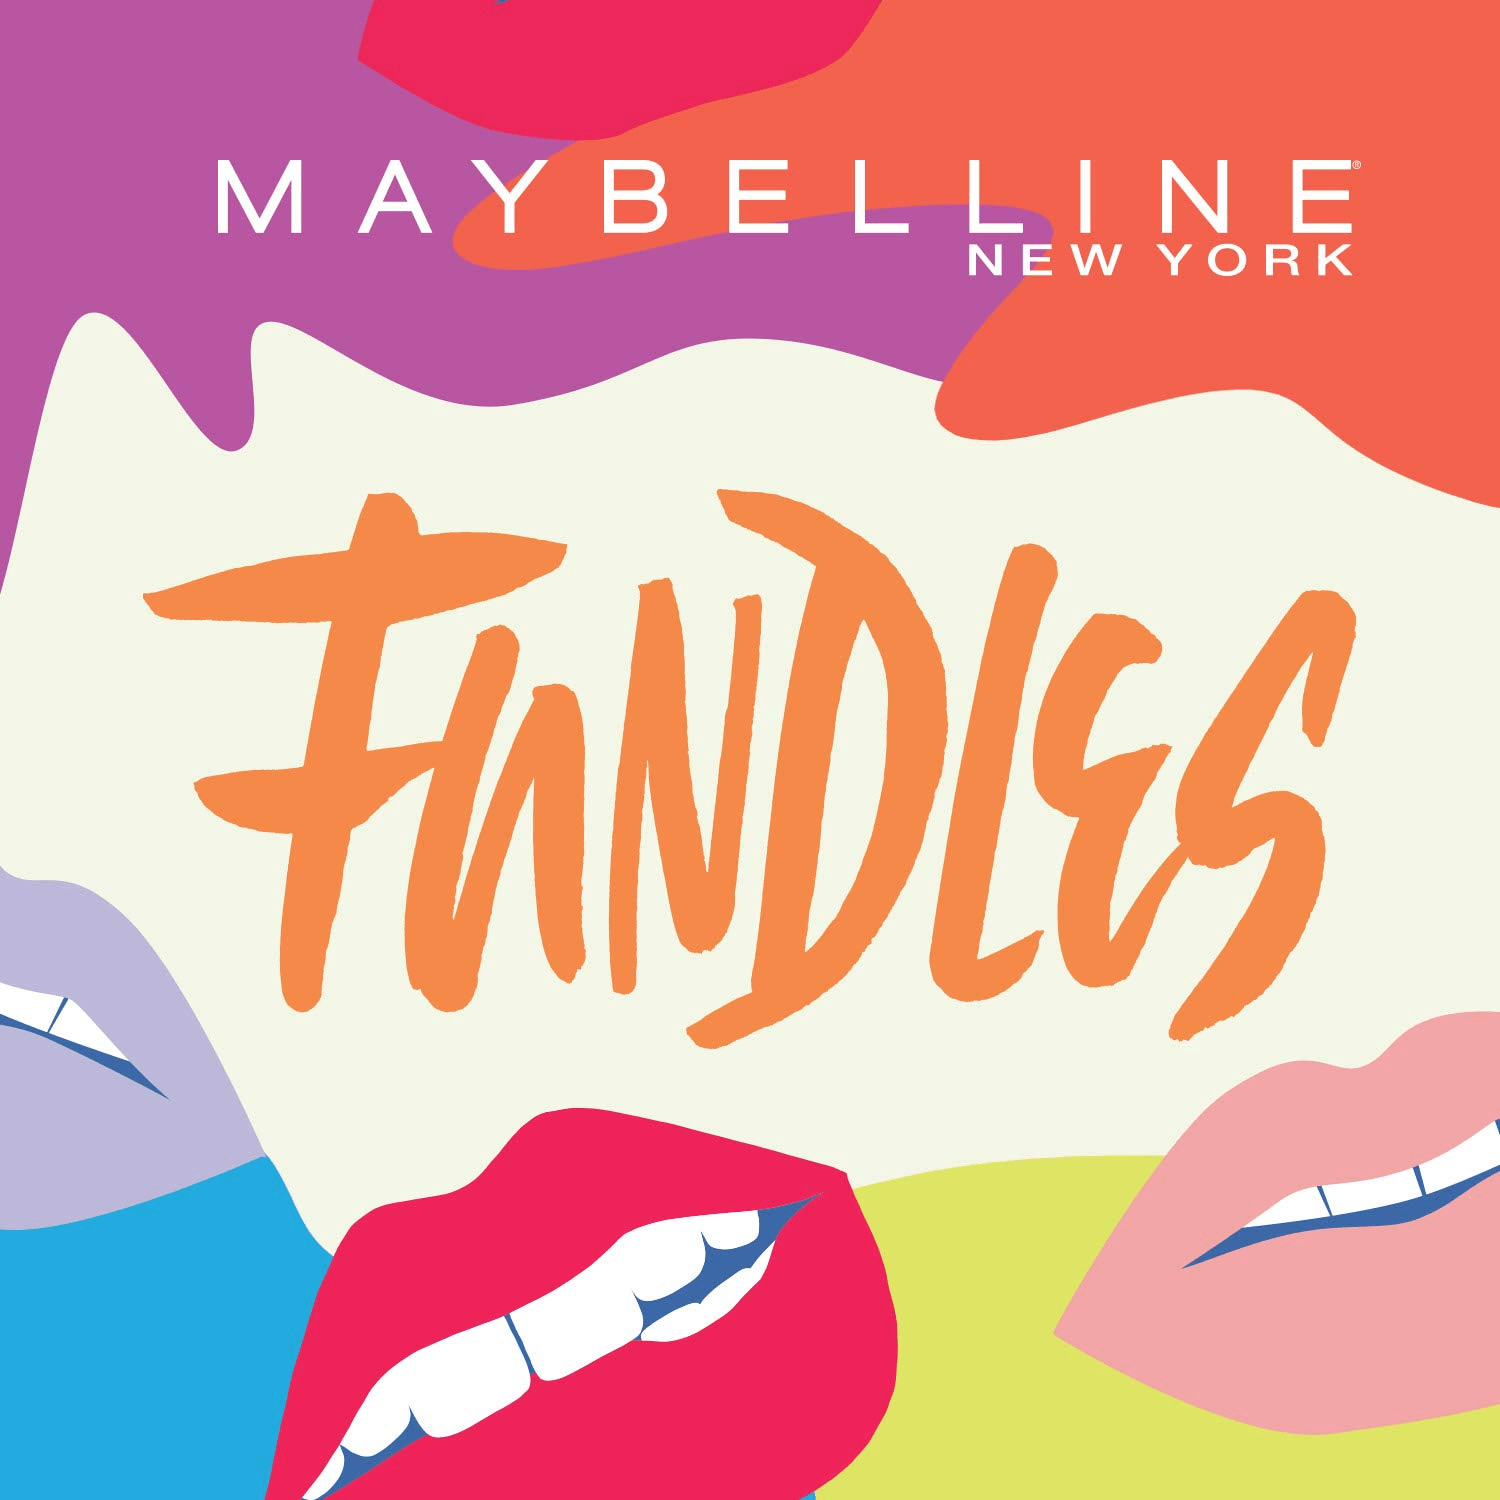 Maybelline Fundles Amazon Prime Day Exclusive Beauty Bundles Available Now!